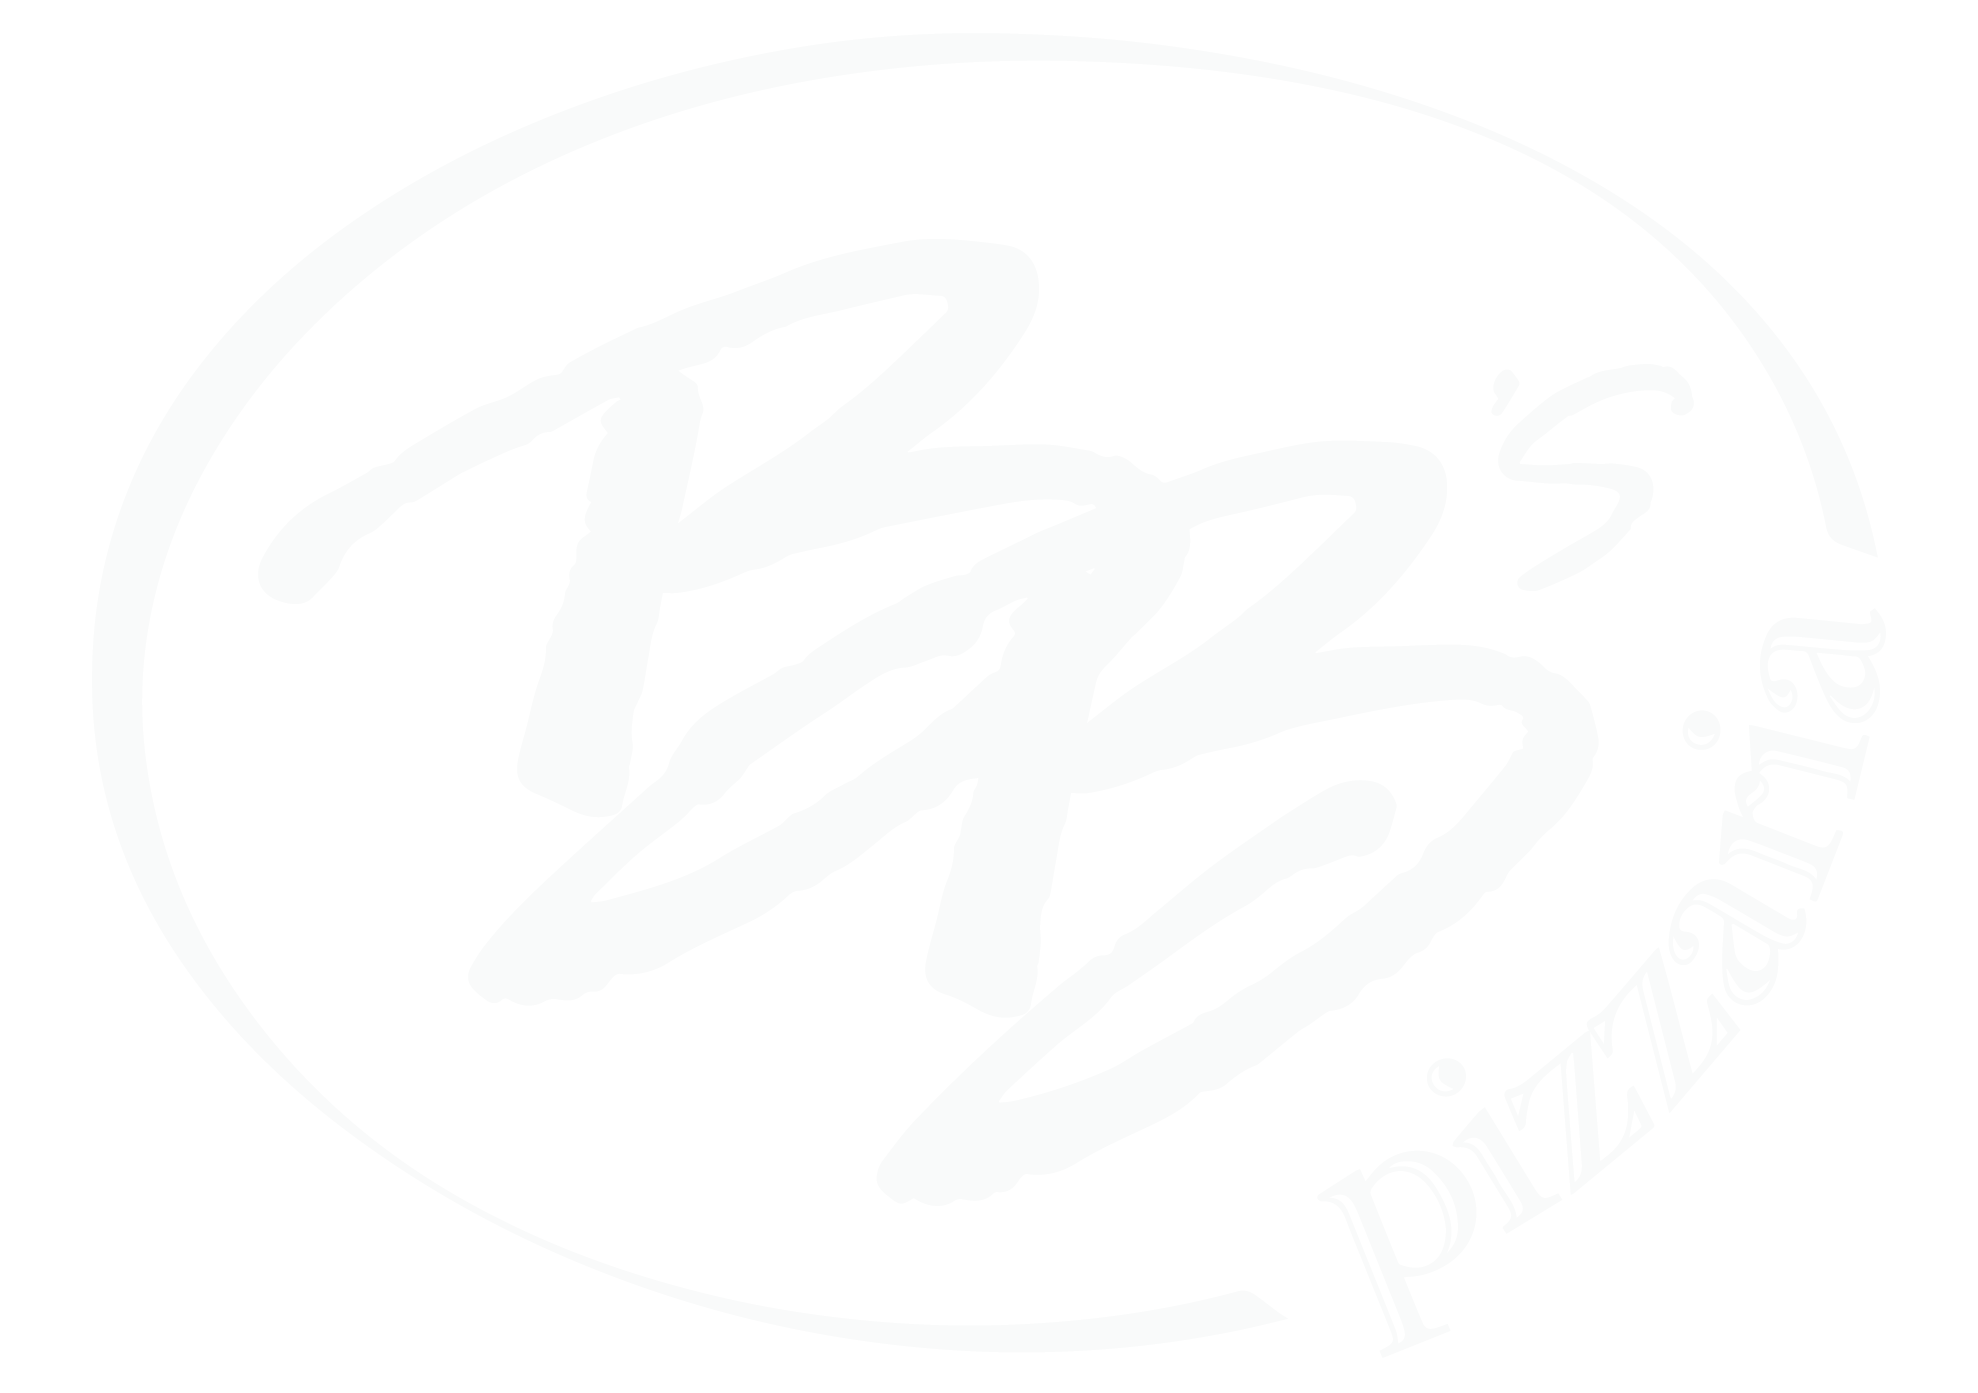 BB's Pizzaria